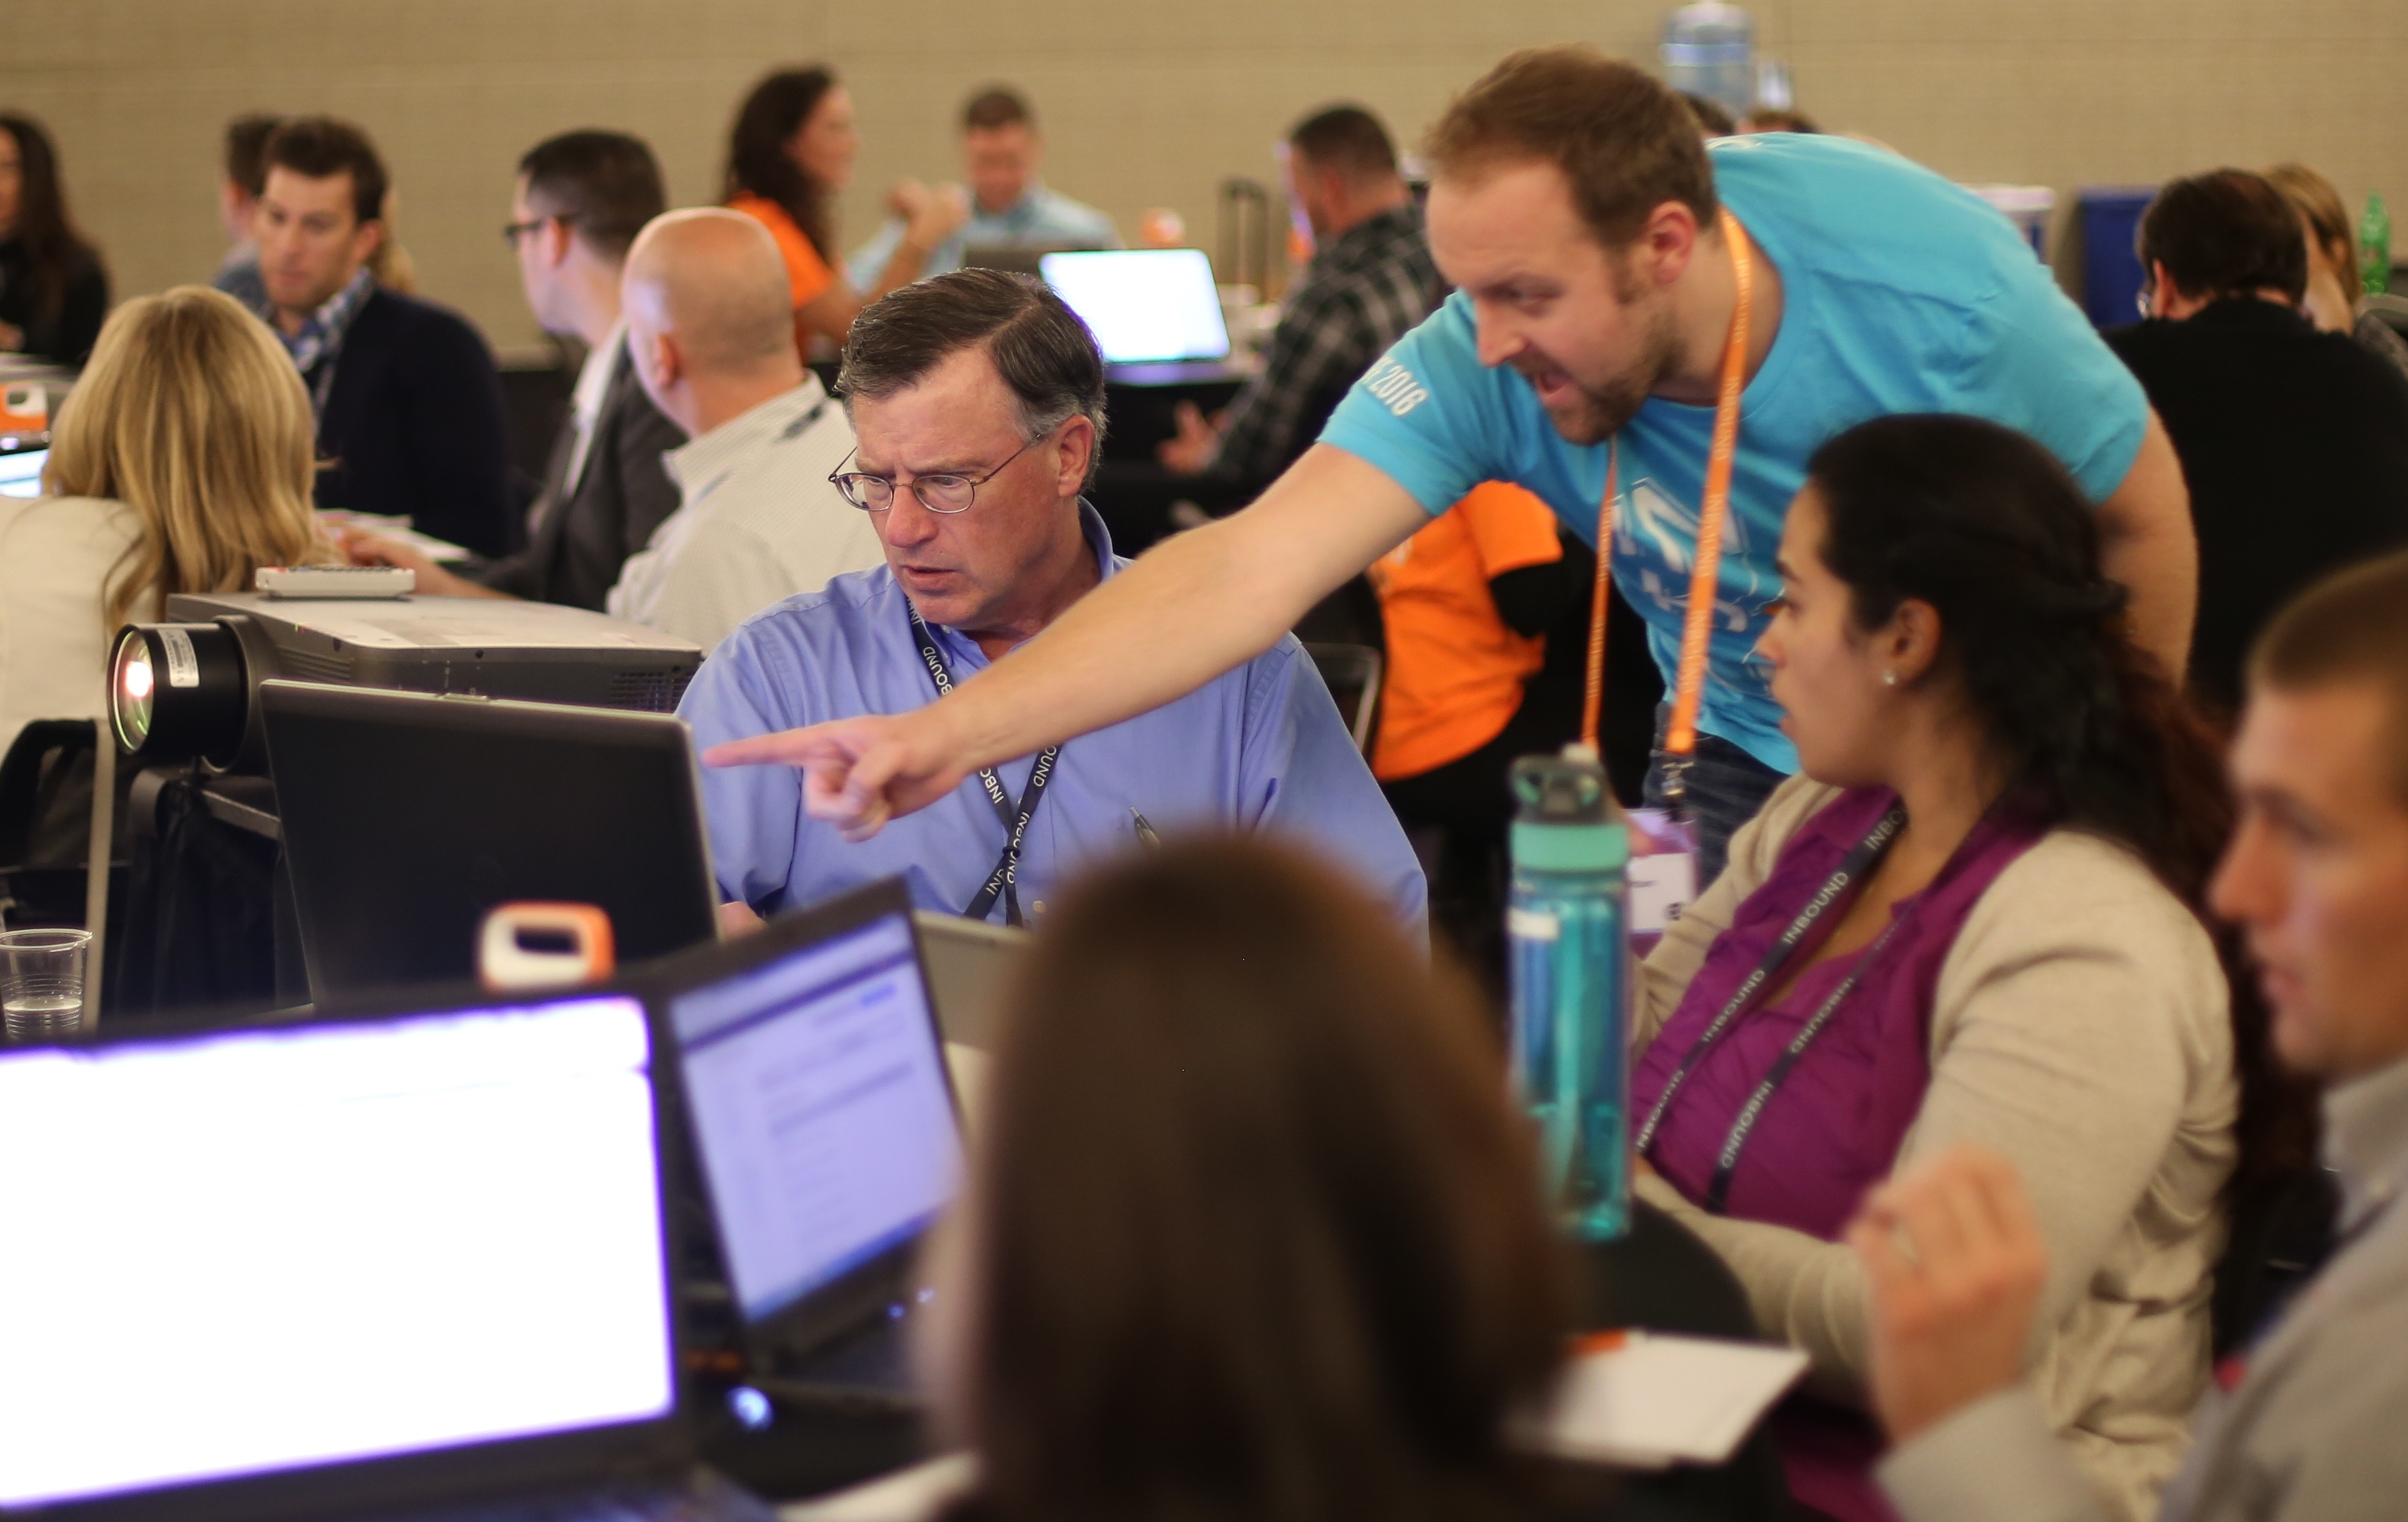 How to Get Your Boss to Pay for HubSpot Training Day